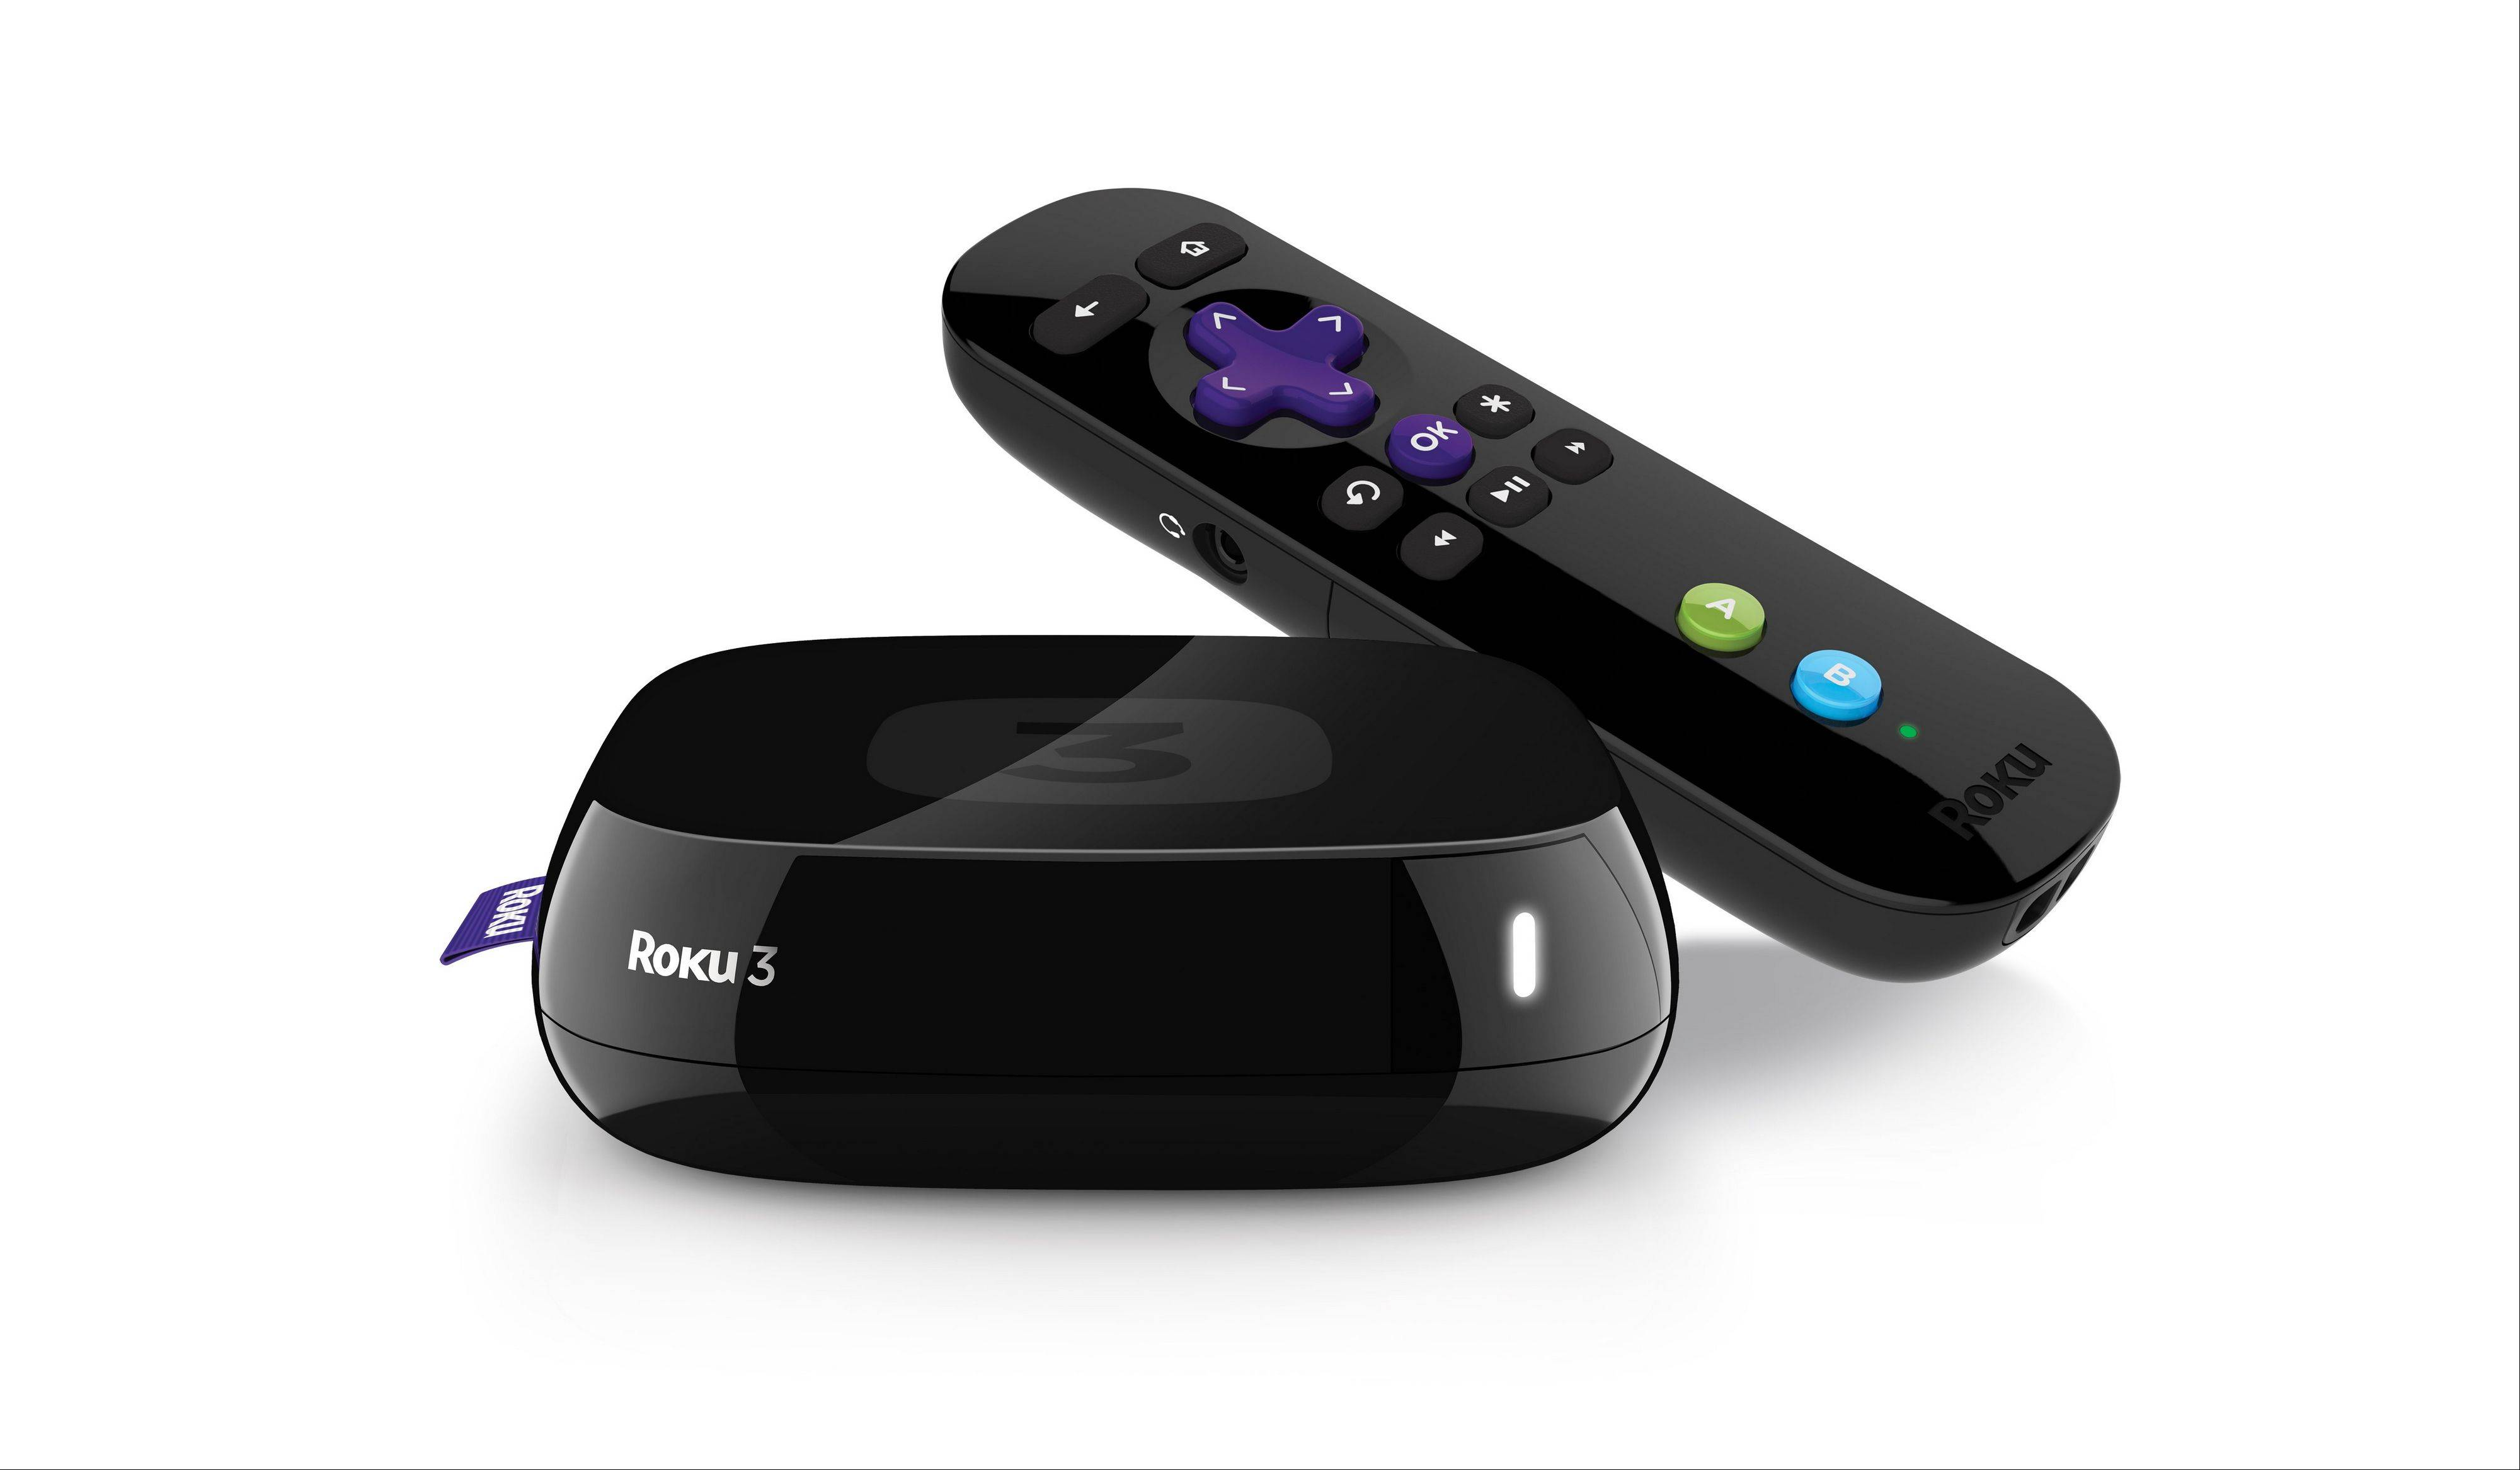 Roky 3. Roku is plugging headphones and several other new features into its latest set-top box for streaming Internet video to TVs, a move that amplifies its effort to upstage Apple�s better-selling player.